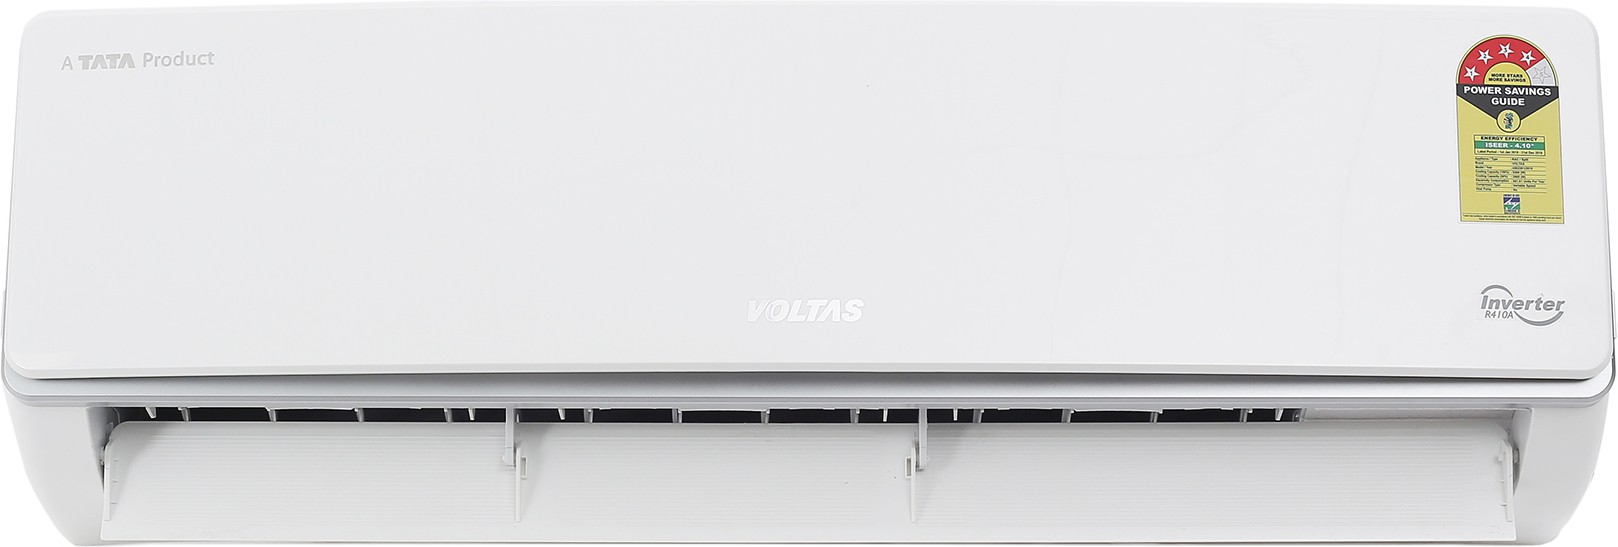 Voltas 184VSZS 1.5 Ton 4 Star BEE Rating 2018 Inverter AC Image